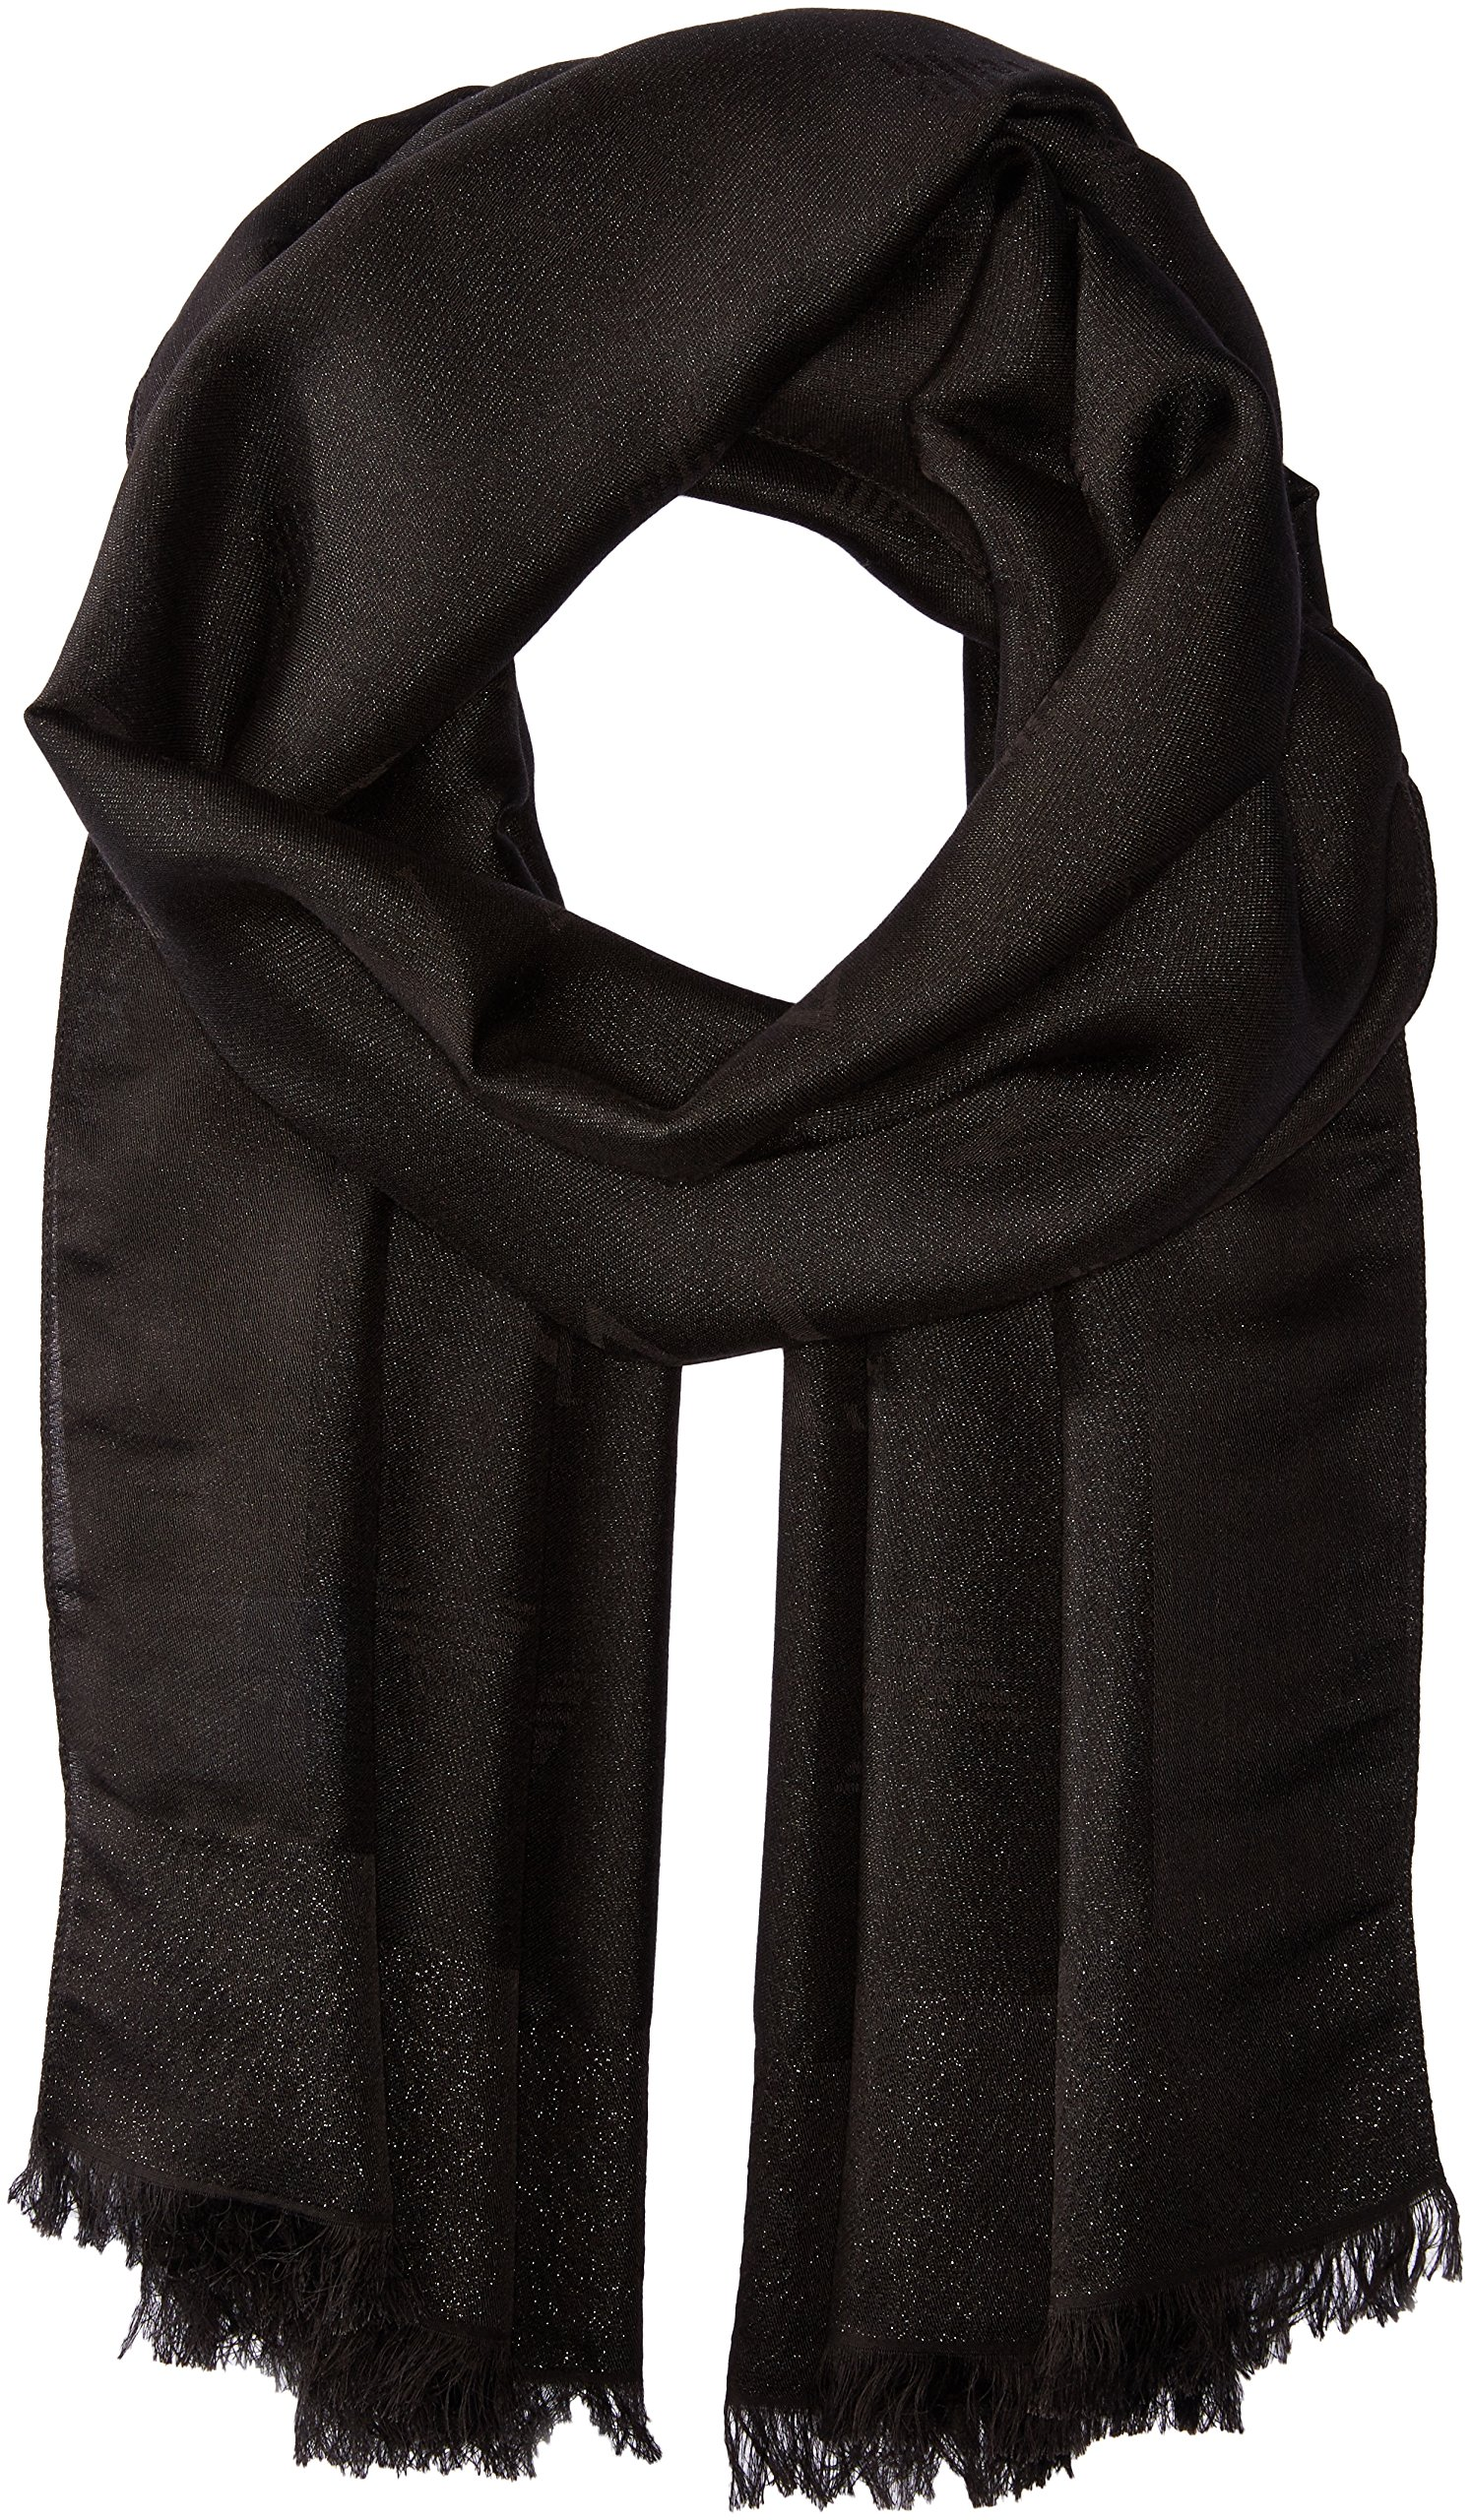 Armani Jeans Women's Solid Woven Scarf, black, One Size